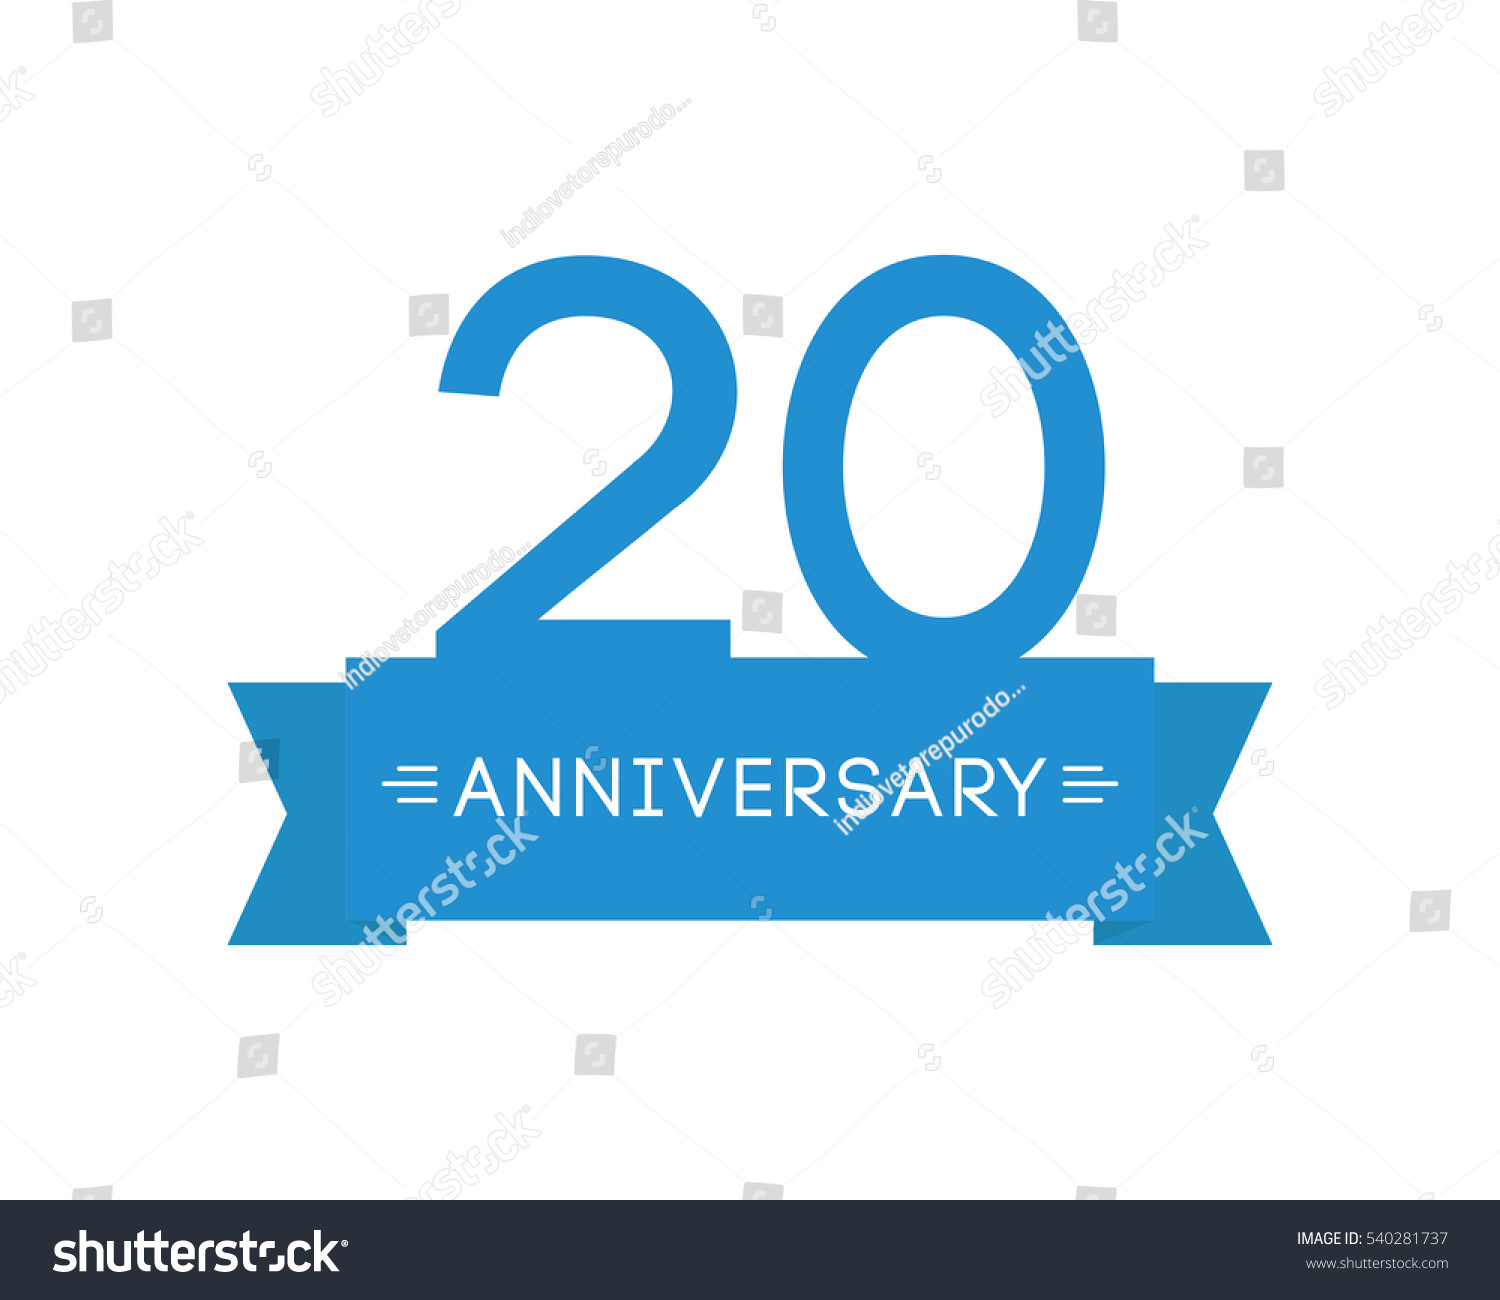 Anniversary twenty years label icon element stock vector 540281737 anniversary to twenty years the label icon element ribbon greeting cards banners m4hsunfo